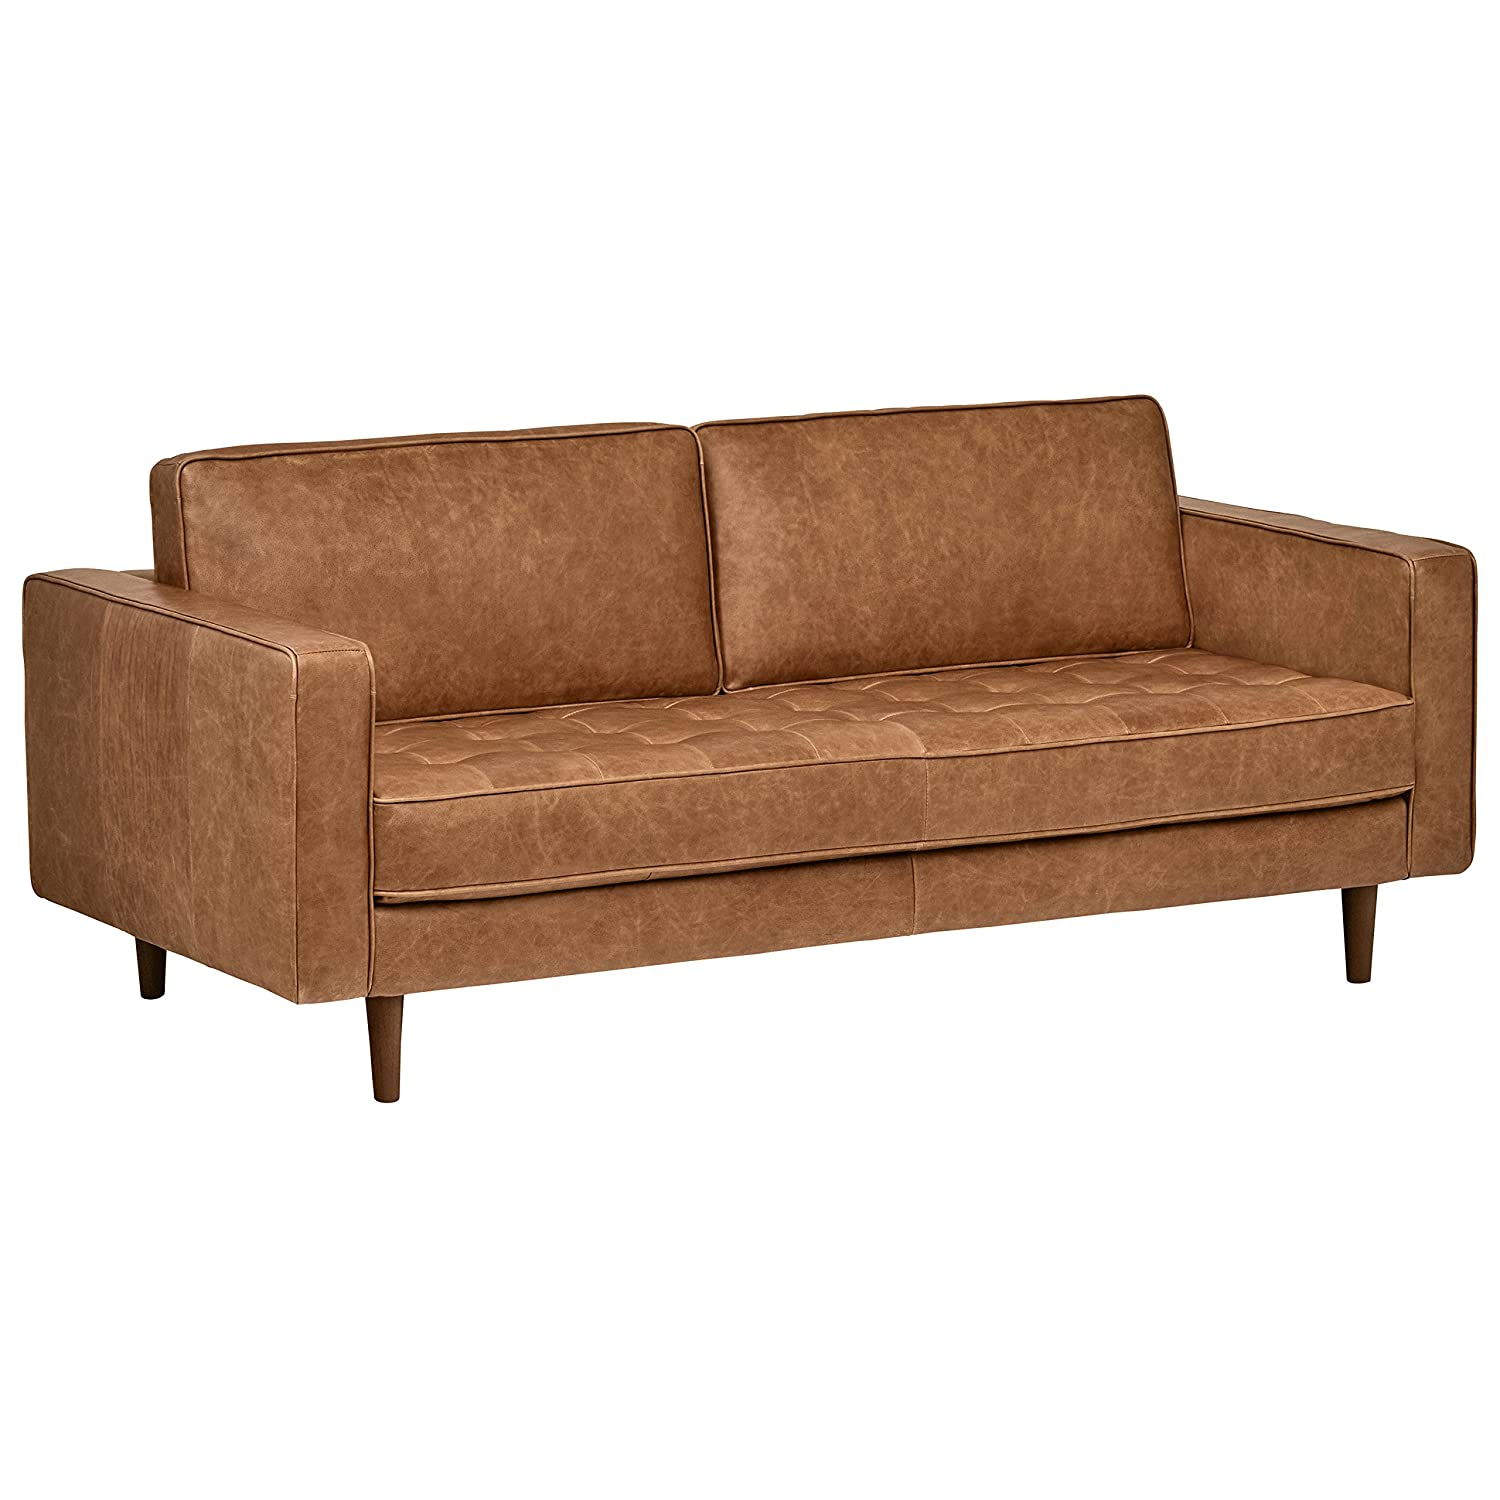 5 Best Leather Sofas 2019 Complete Reviews And Buyer S